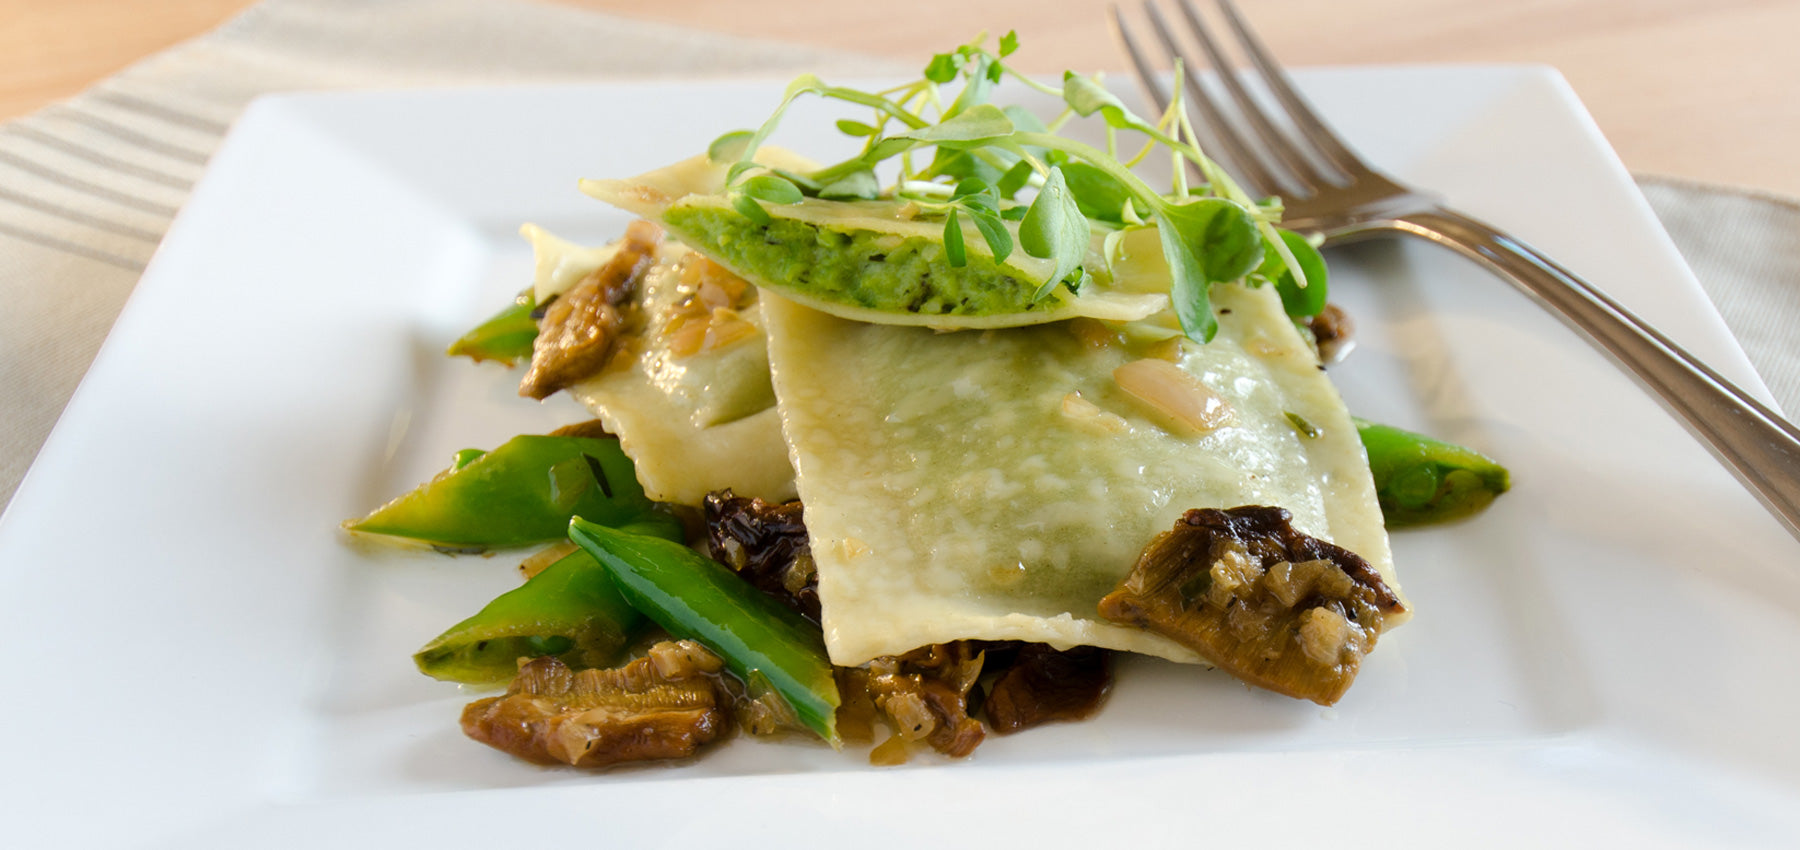 Garden Mint Pea Ravioli with Porcini Mushrooms & White Wine